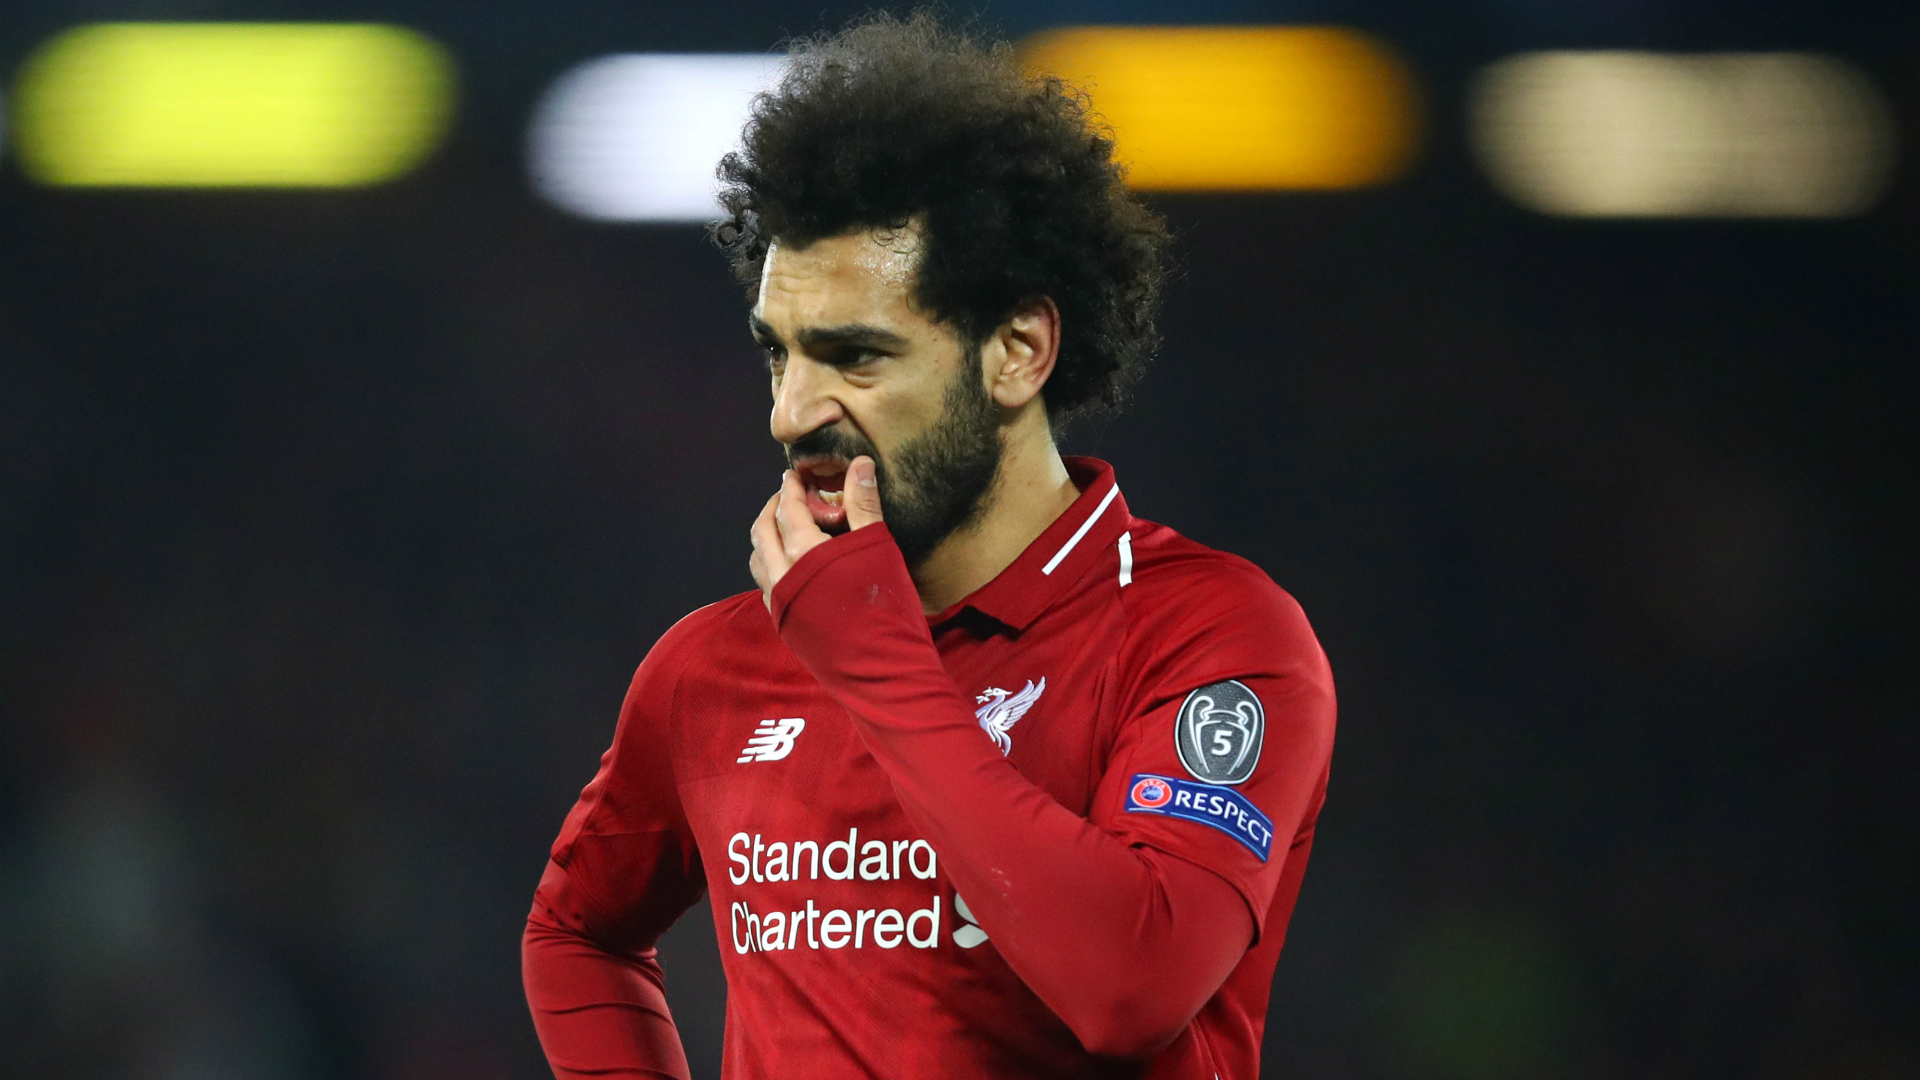 Champions League: Mohamed Salah, Roberto Firmino ruled out of Liverpool vs. Barcelona